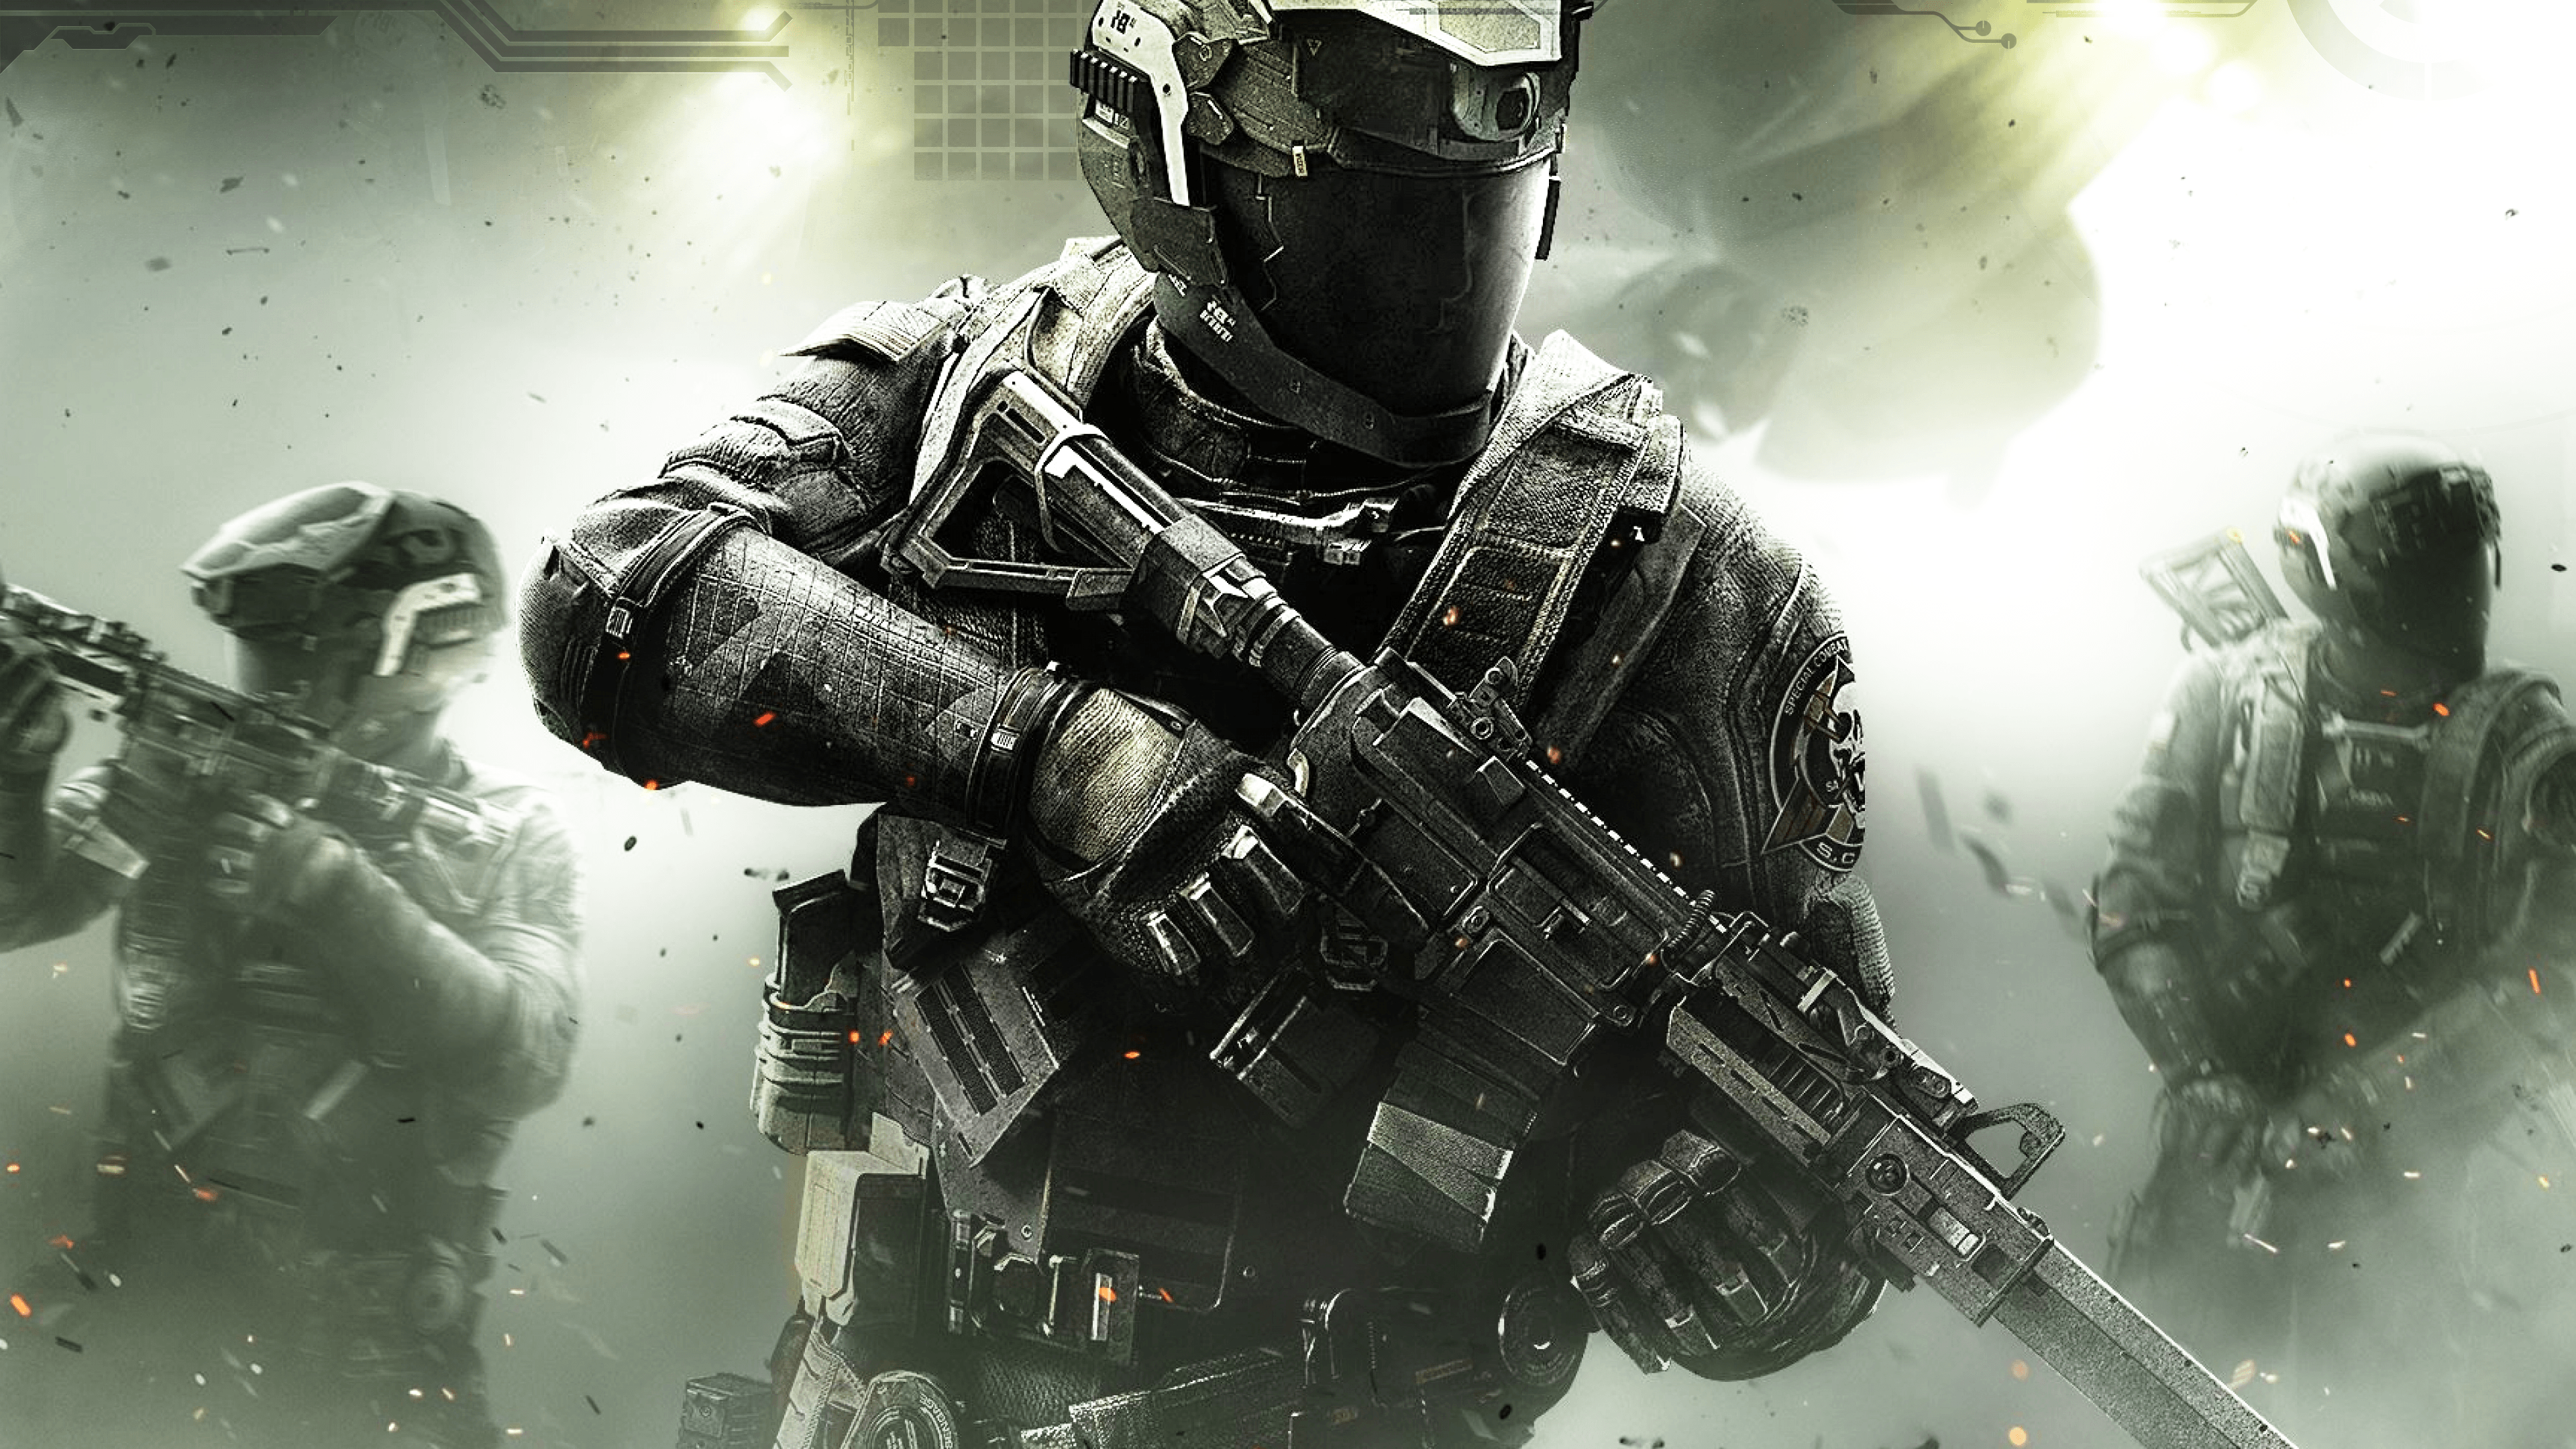 4k Call Of Duty Wallpapers Top Free 4k Call Of Duty